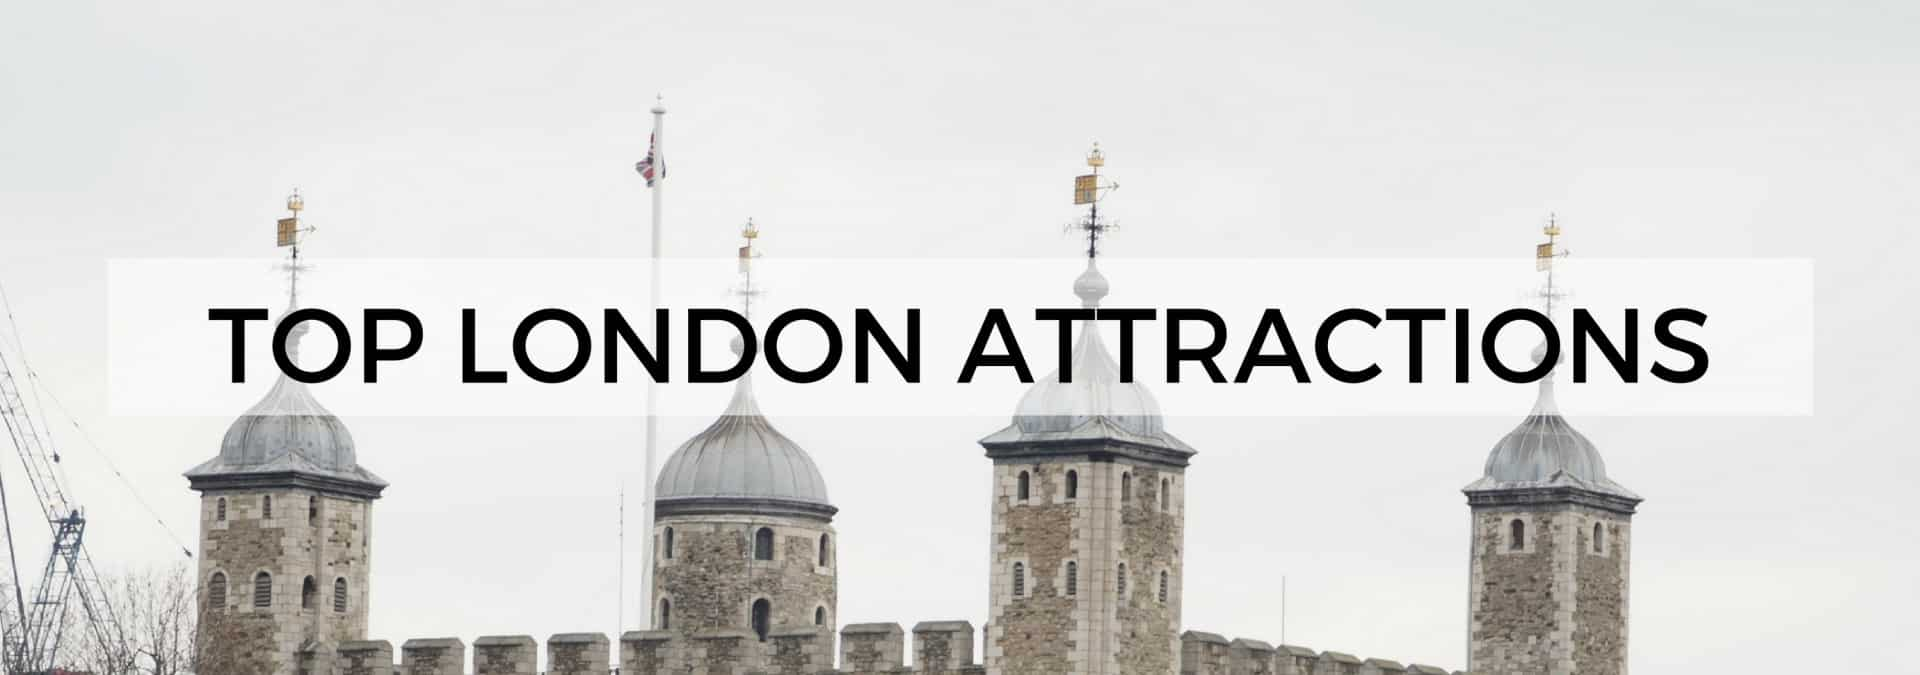 London Top Attractions